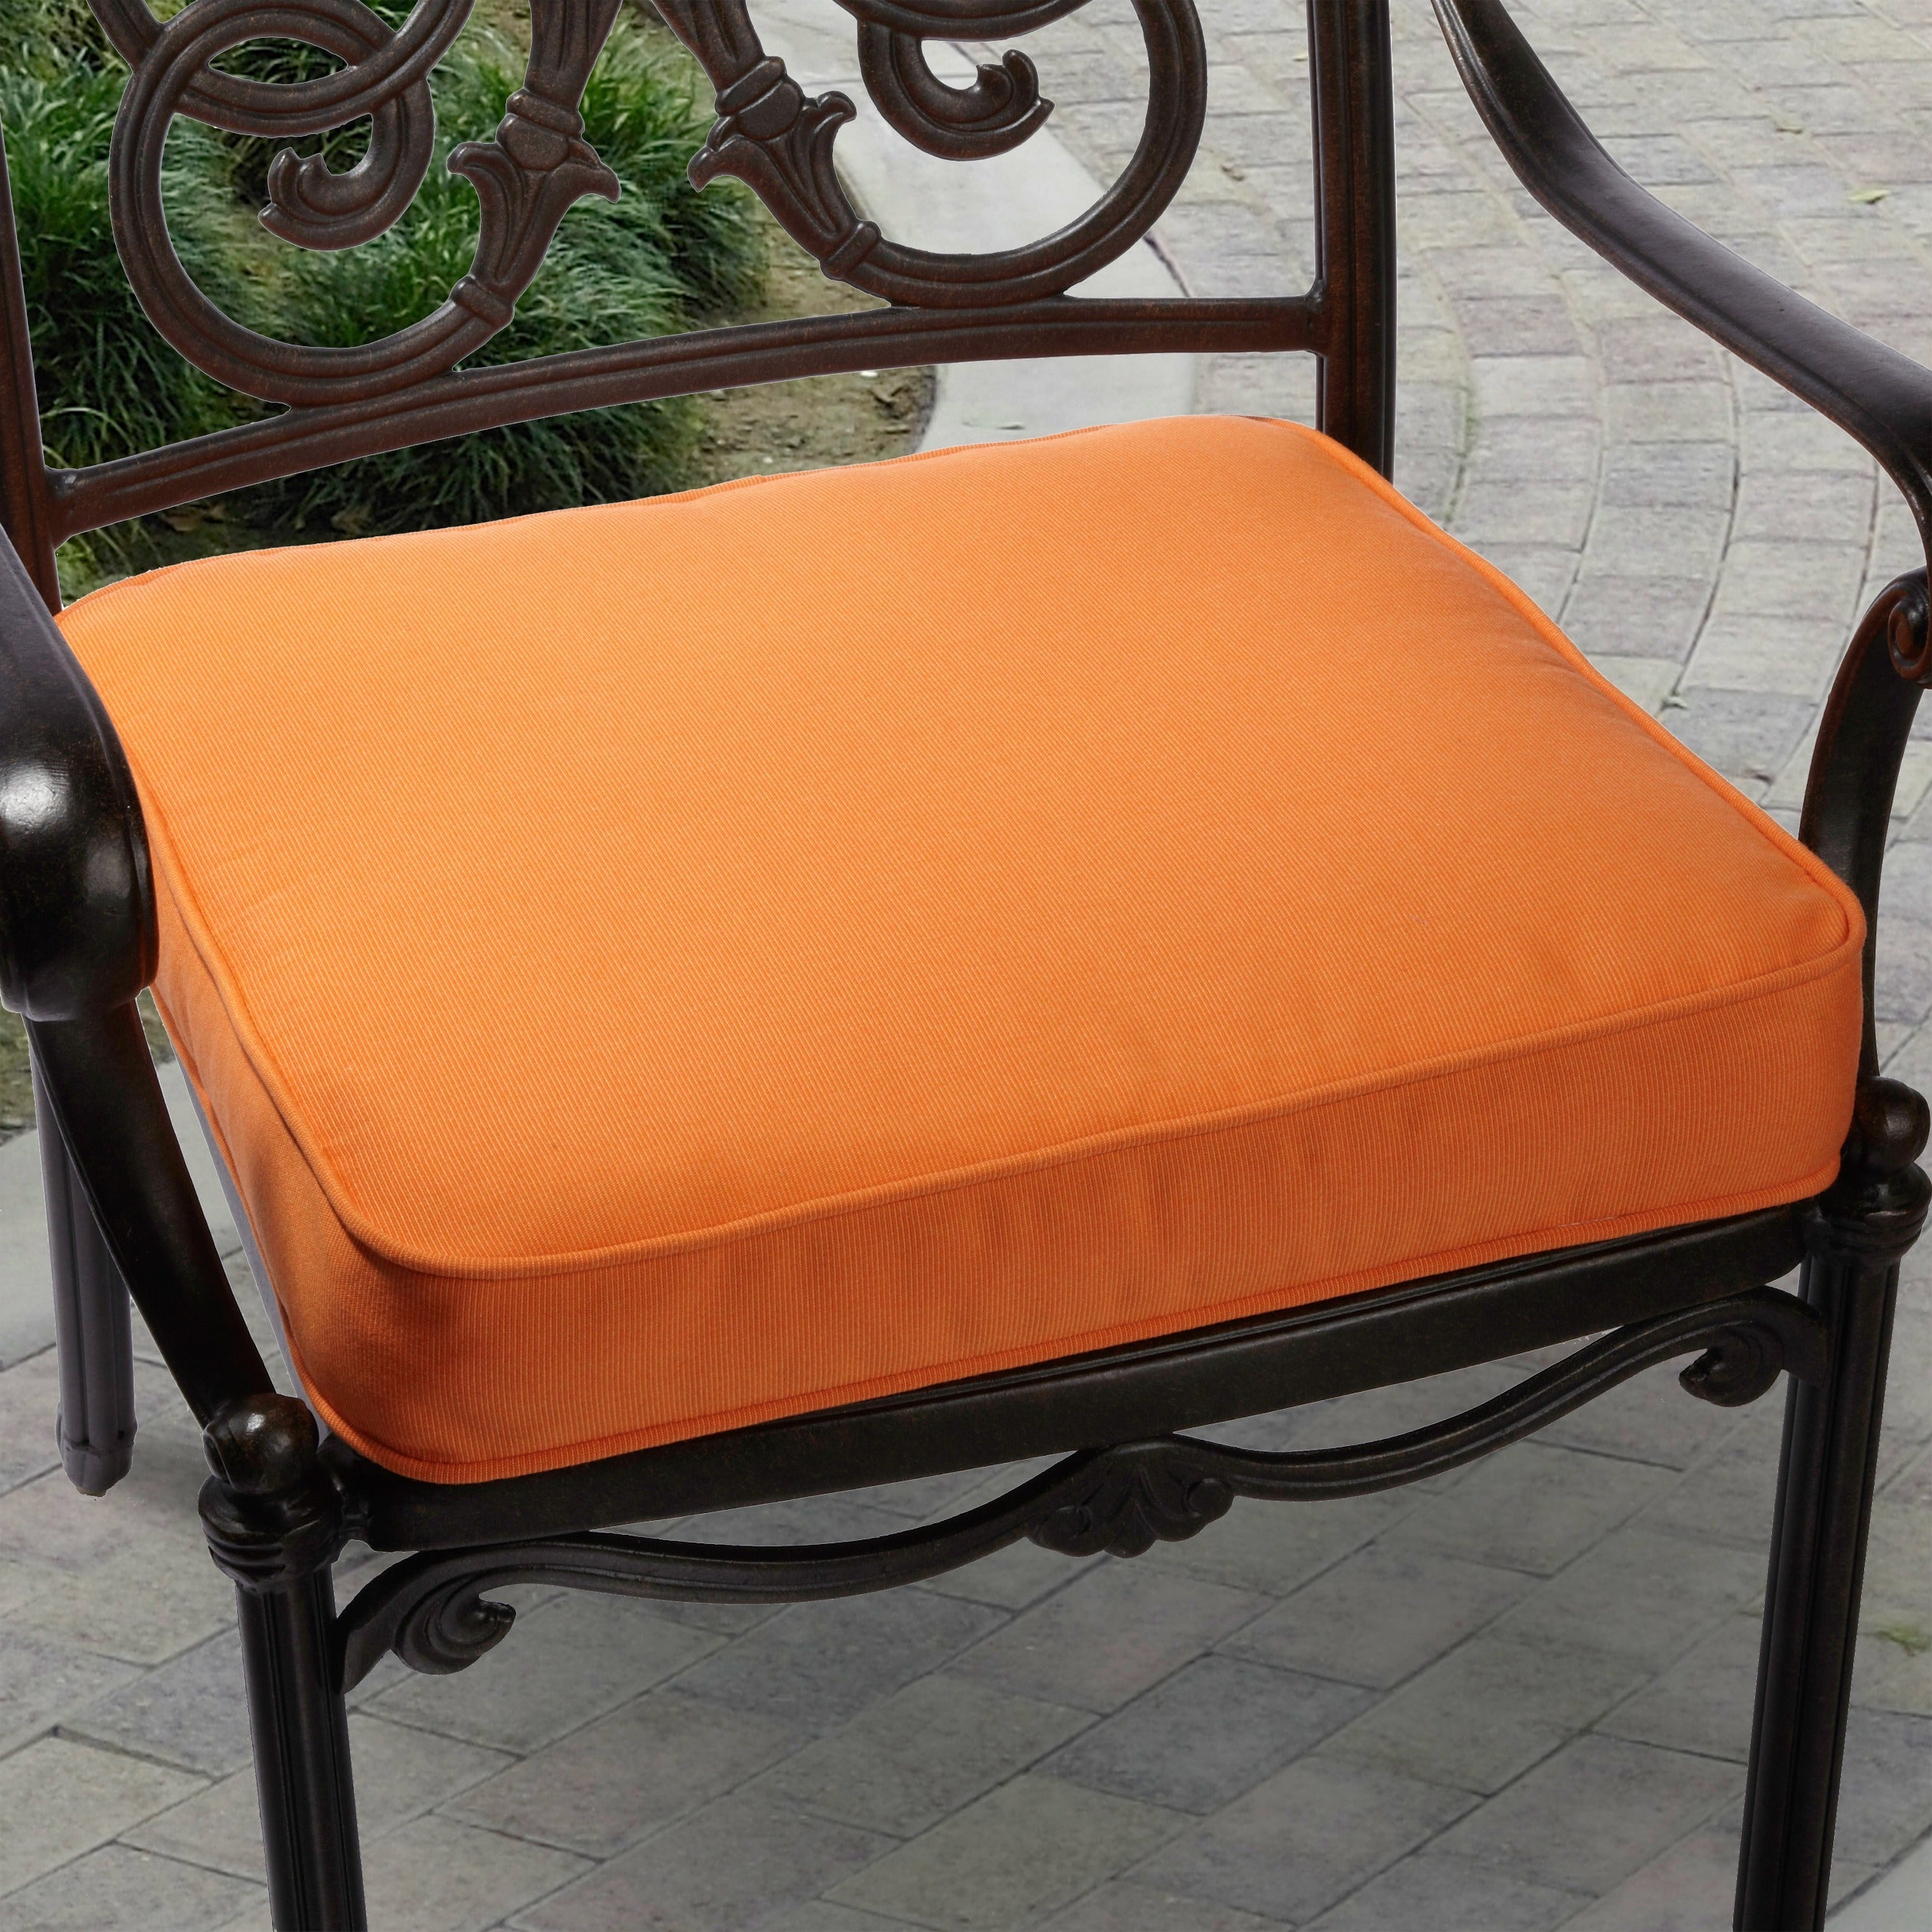 Recent Indoor/ Outdoor Textured Bright 19 Inch Chair Cushion With Sunbrella Fabric Intended For Indoor Outdoor Textured Bright Chaise Lounges With Sunbrella Fabric (Gallery 15 of 25)